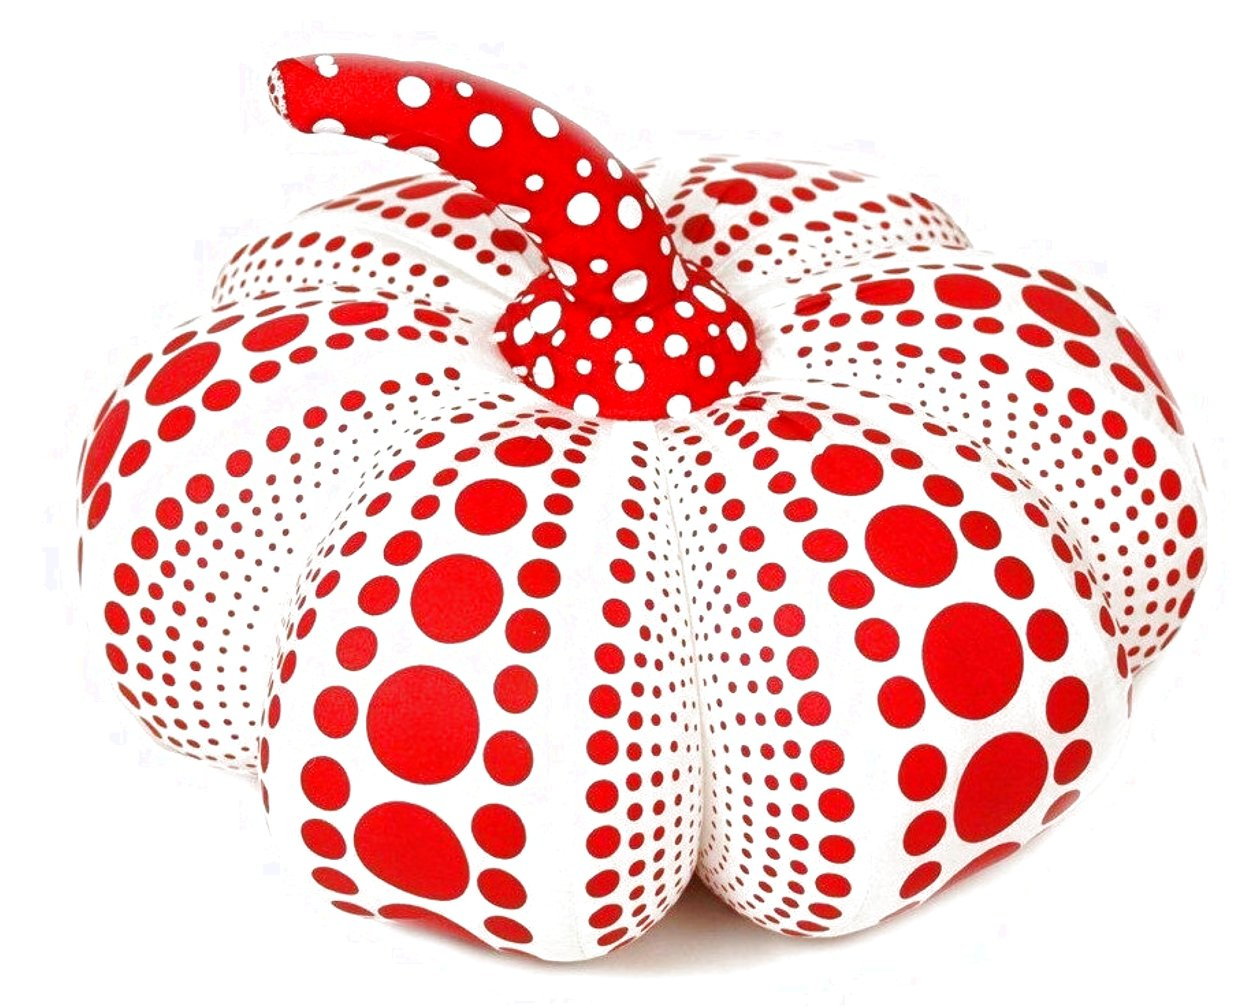 Dots Obsession Mixed Media Soft Sculpture 2016 10x4 Sculpture by Yayoi Kusama